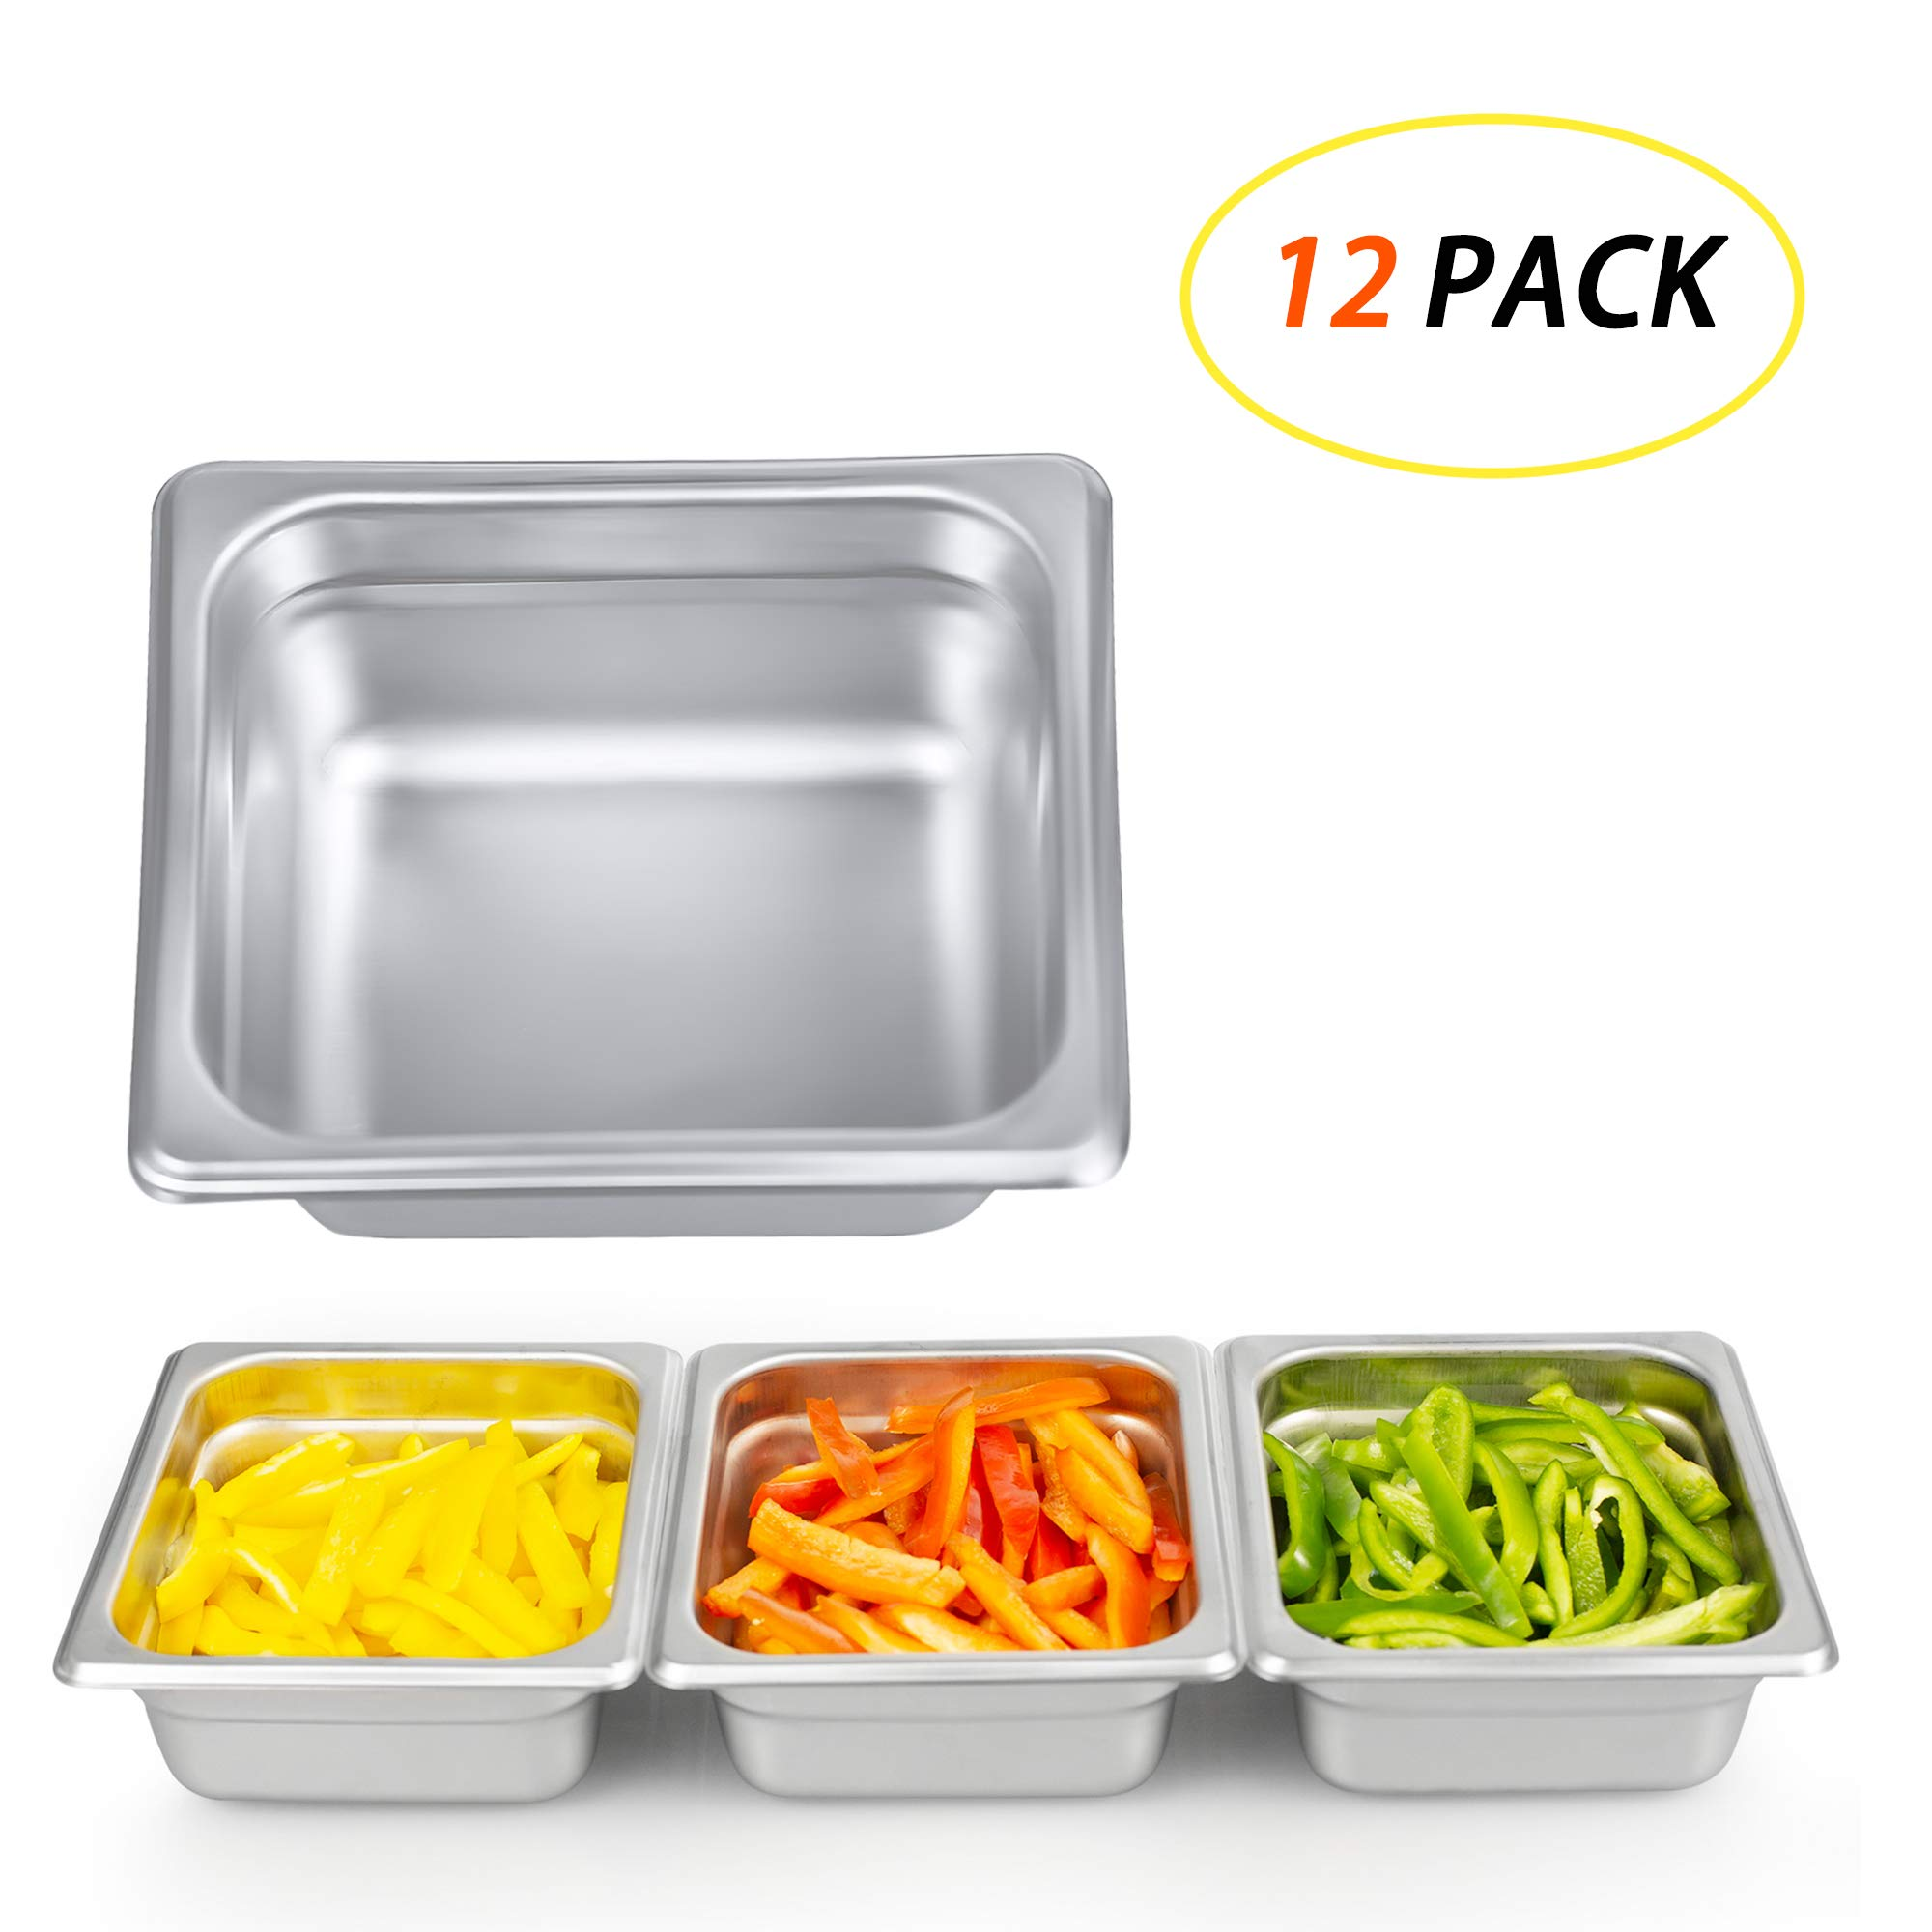 7 Inch Square Stainless Steel Cake Pan, Kitma Bakeware - 1/6 Size Hotel Steam Solid Pans (12 PACK)